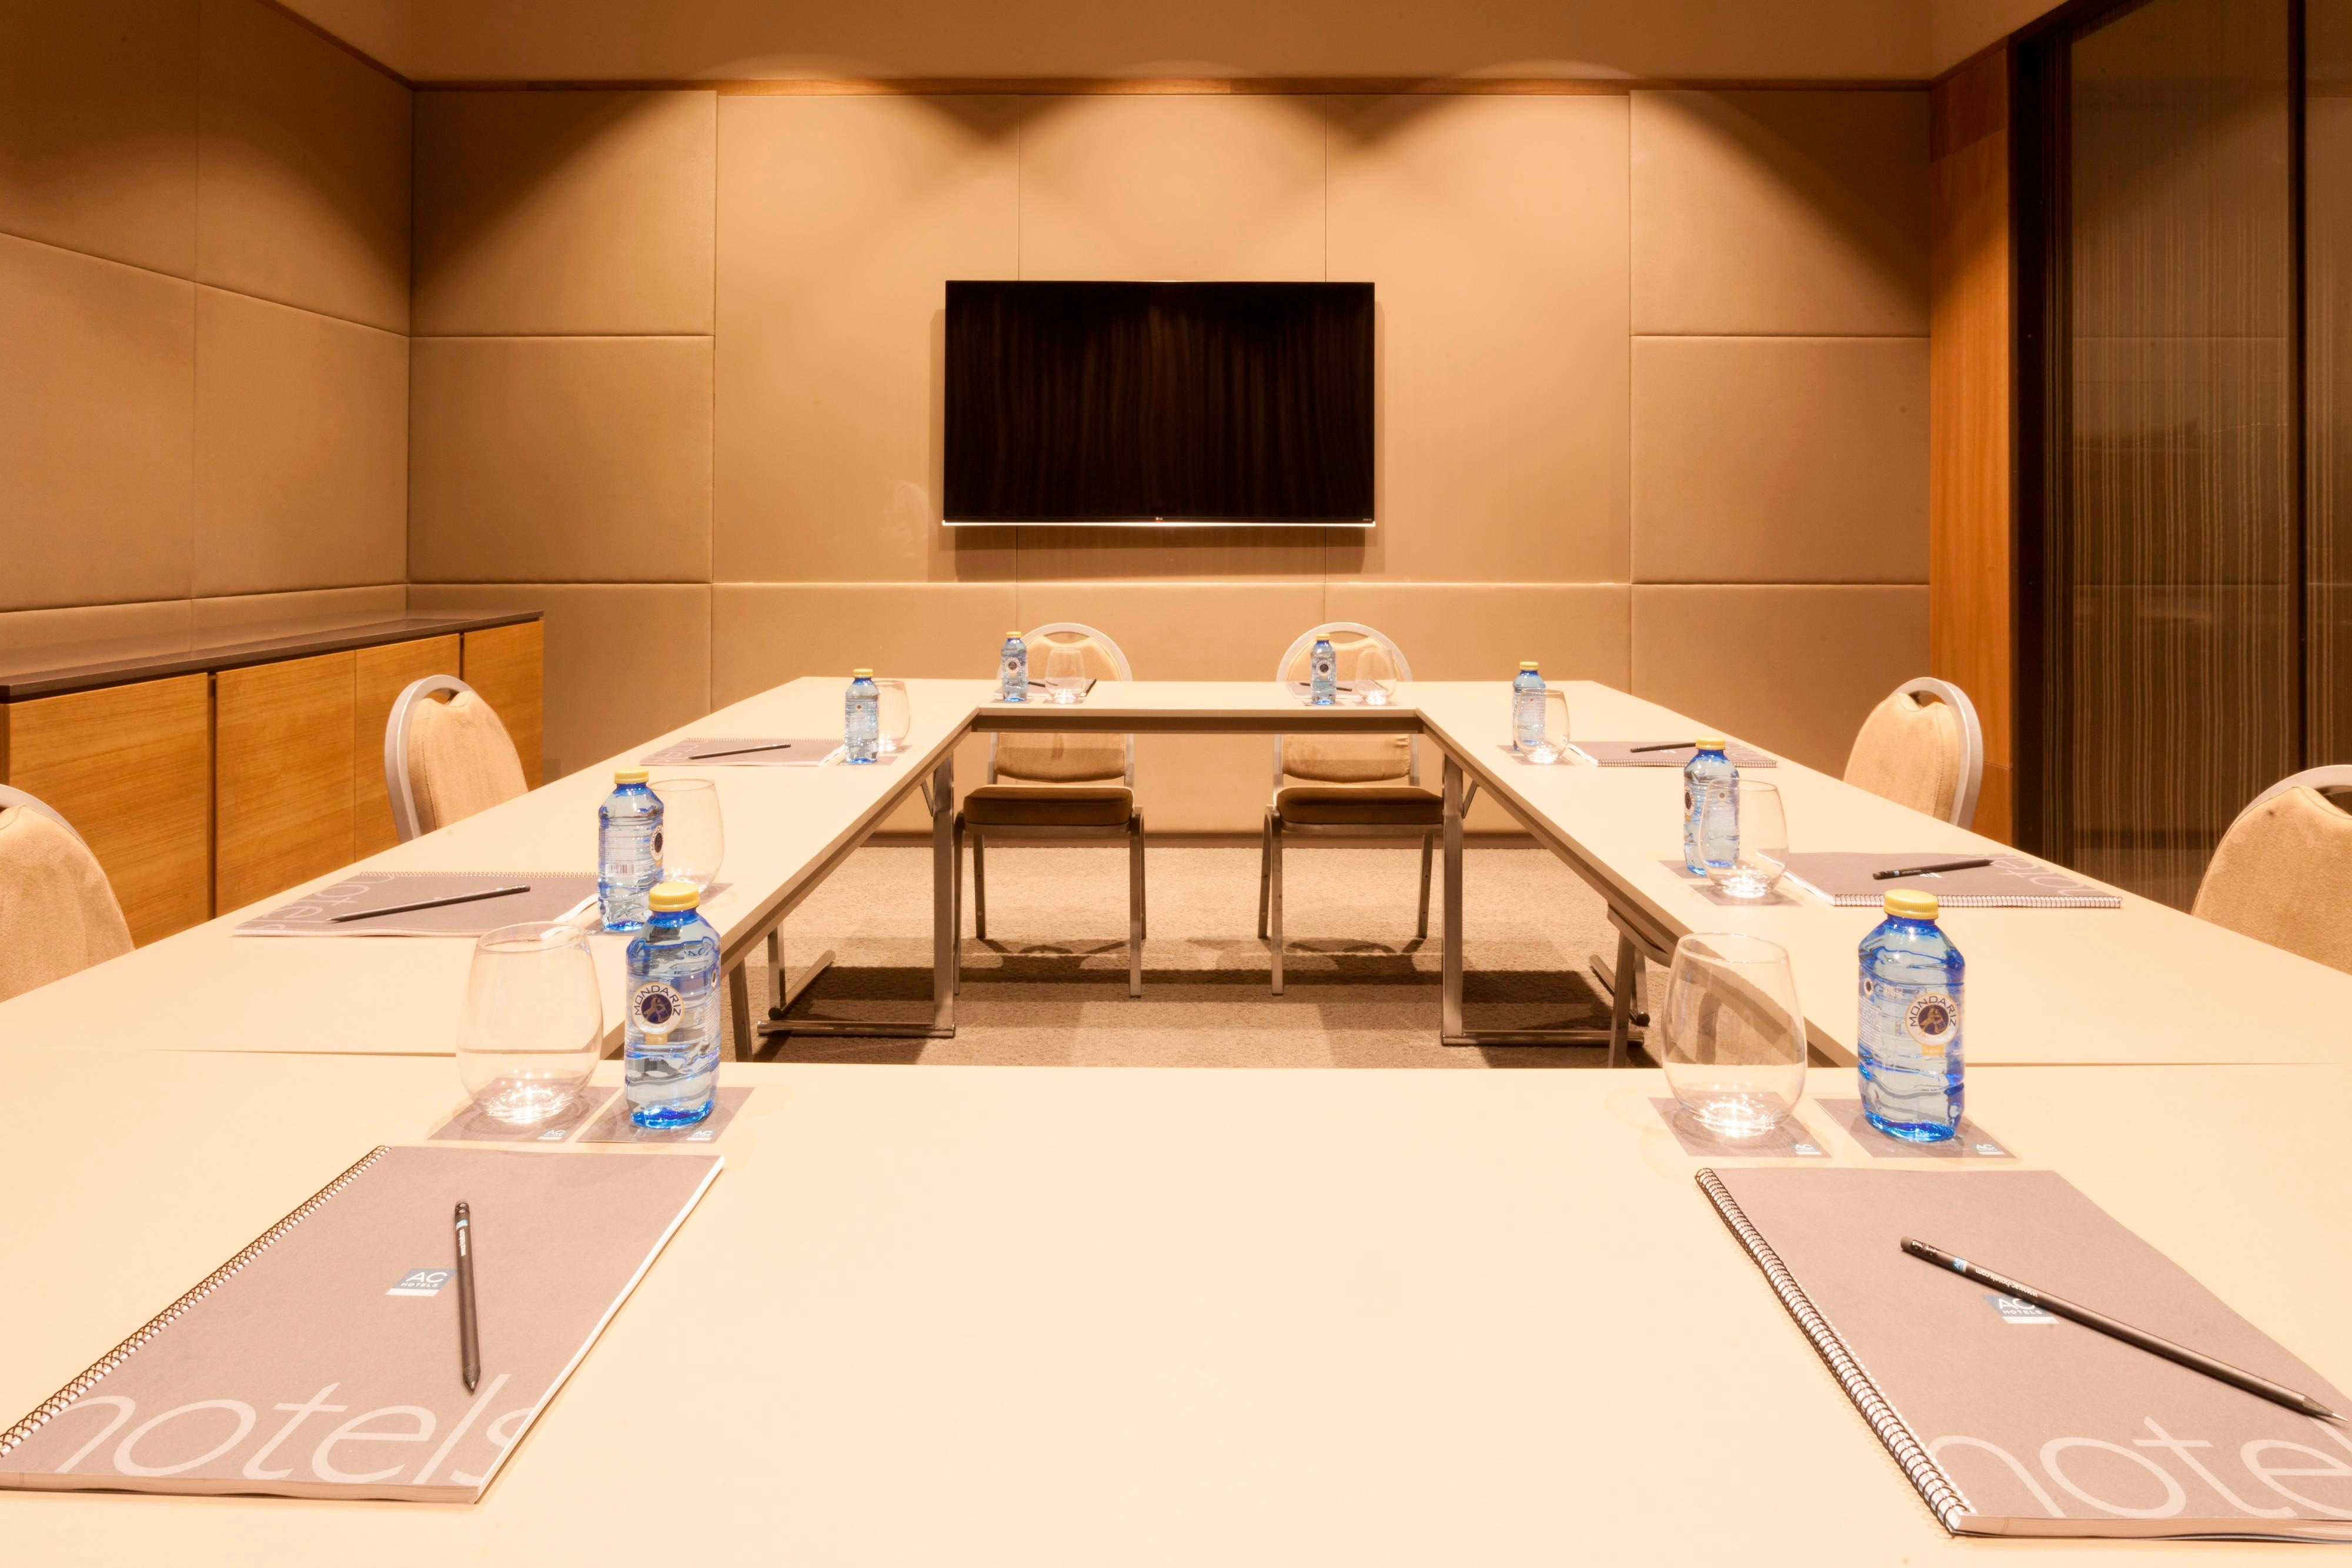 Meeting Hotel Diagonal lIlla